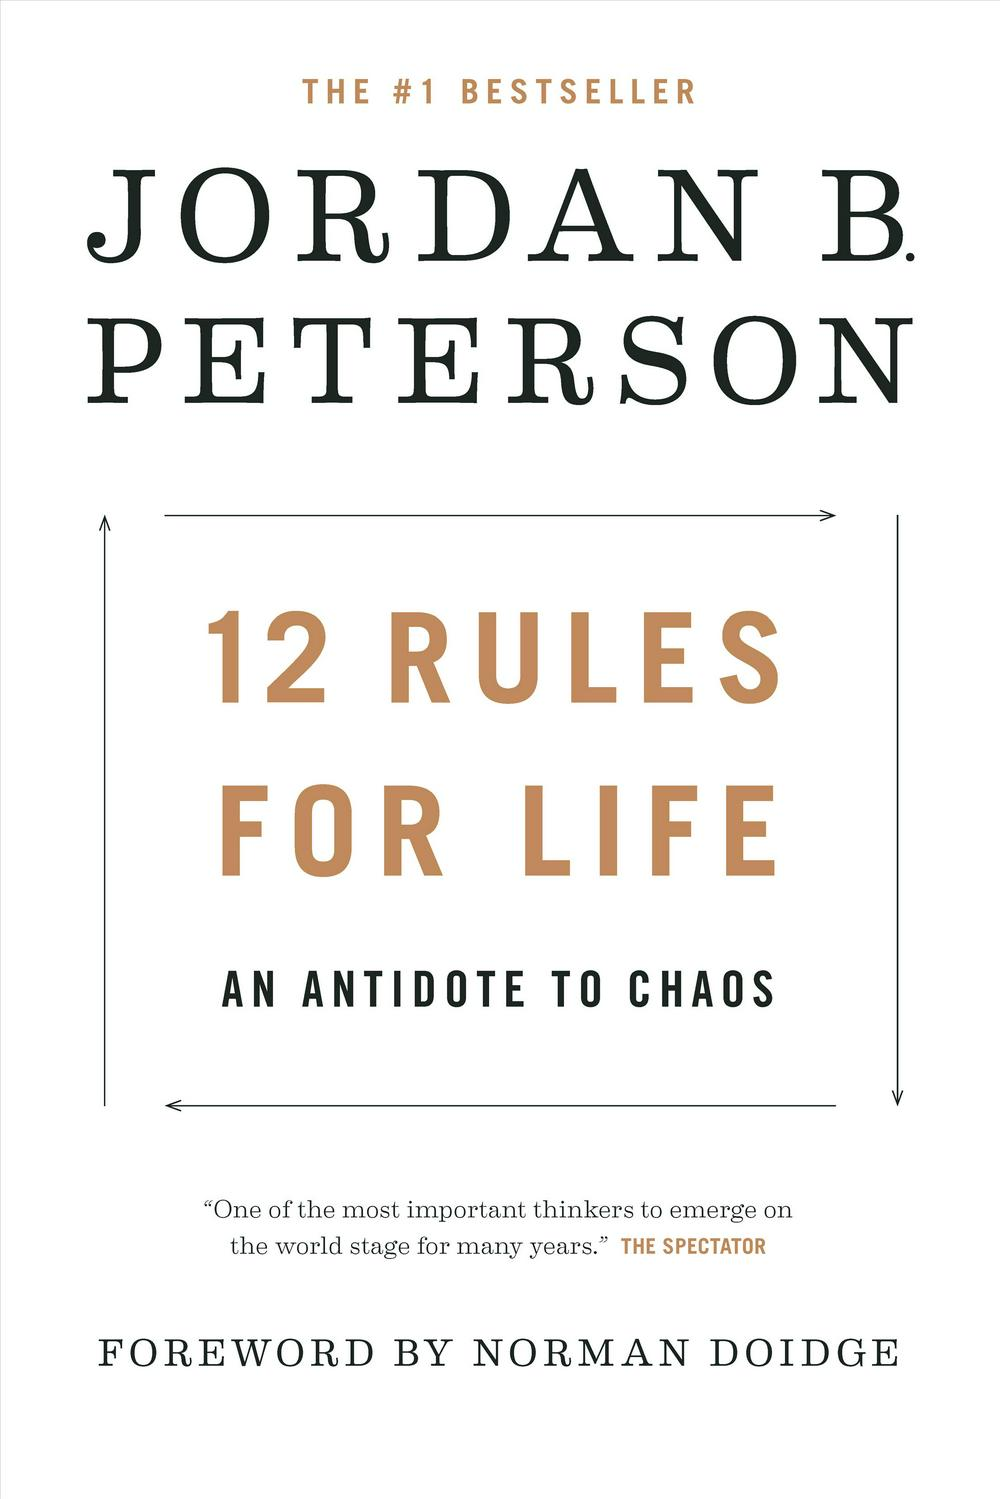 12 Rules for Life: An Antidote to Chaos by Jordan Peterson, ISBN: 9780345816023